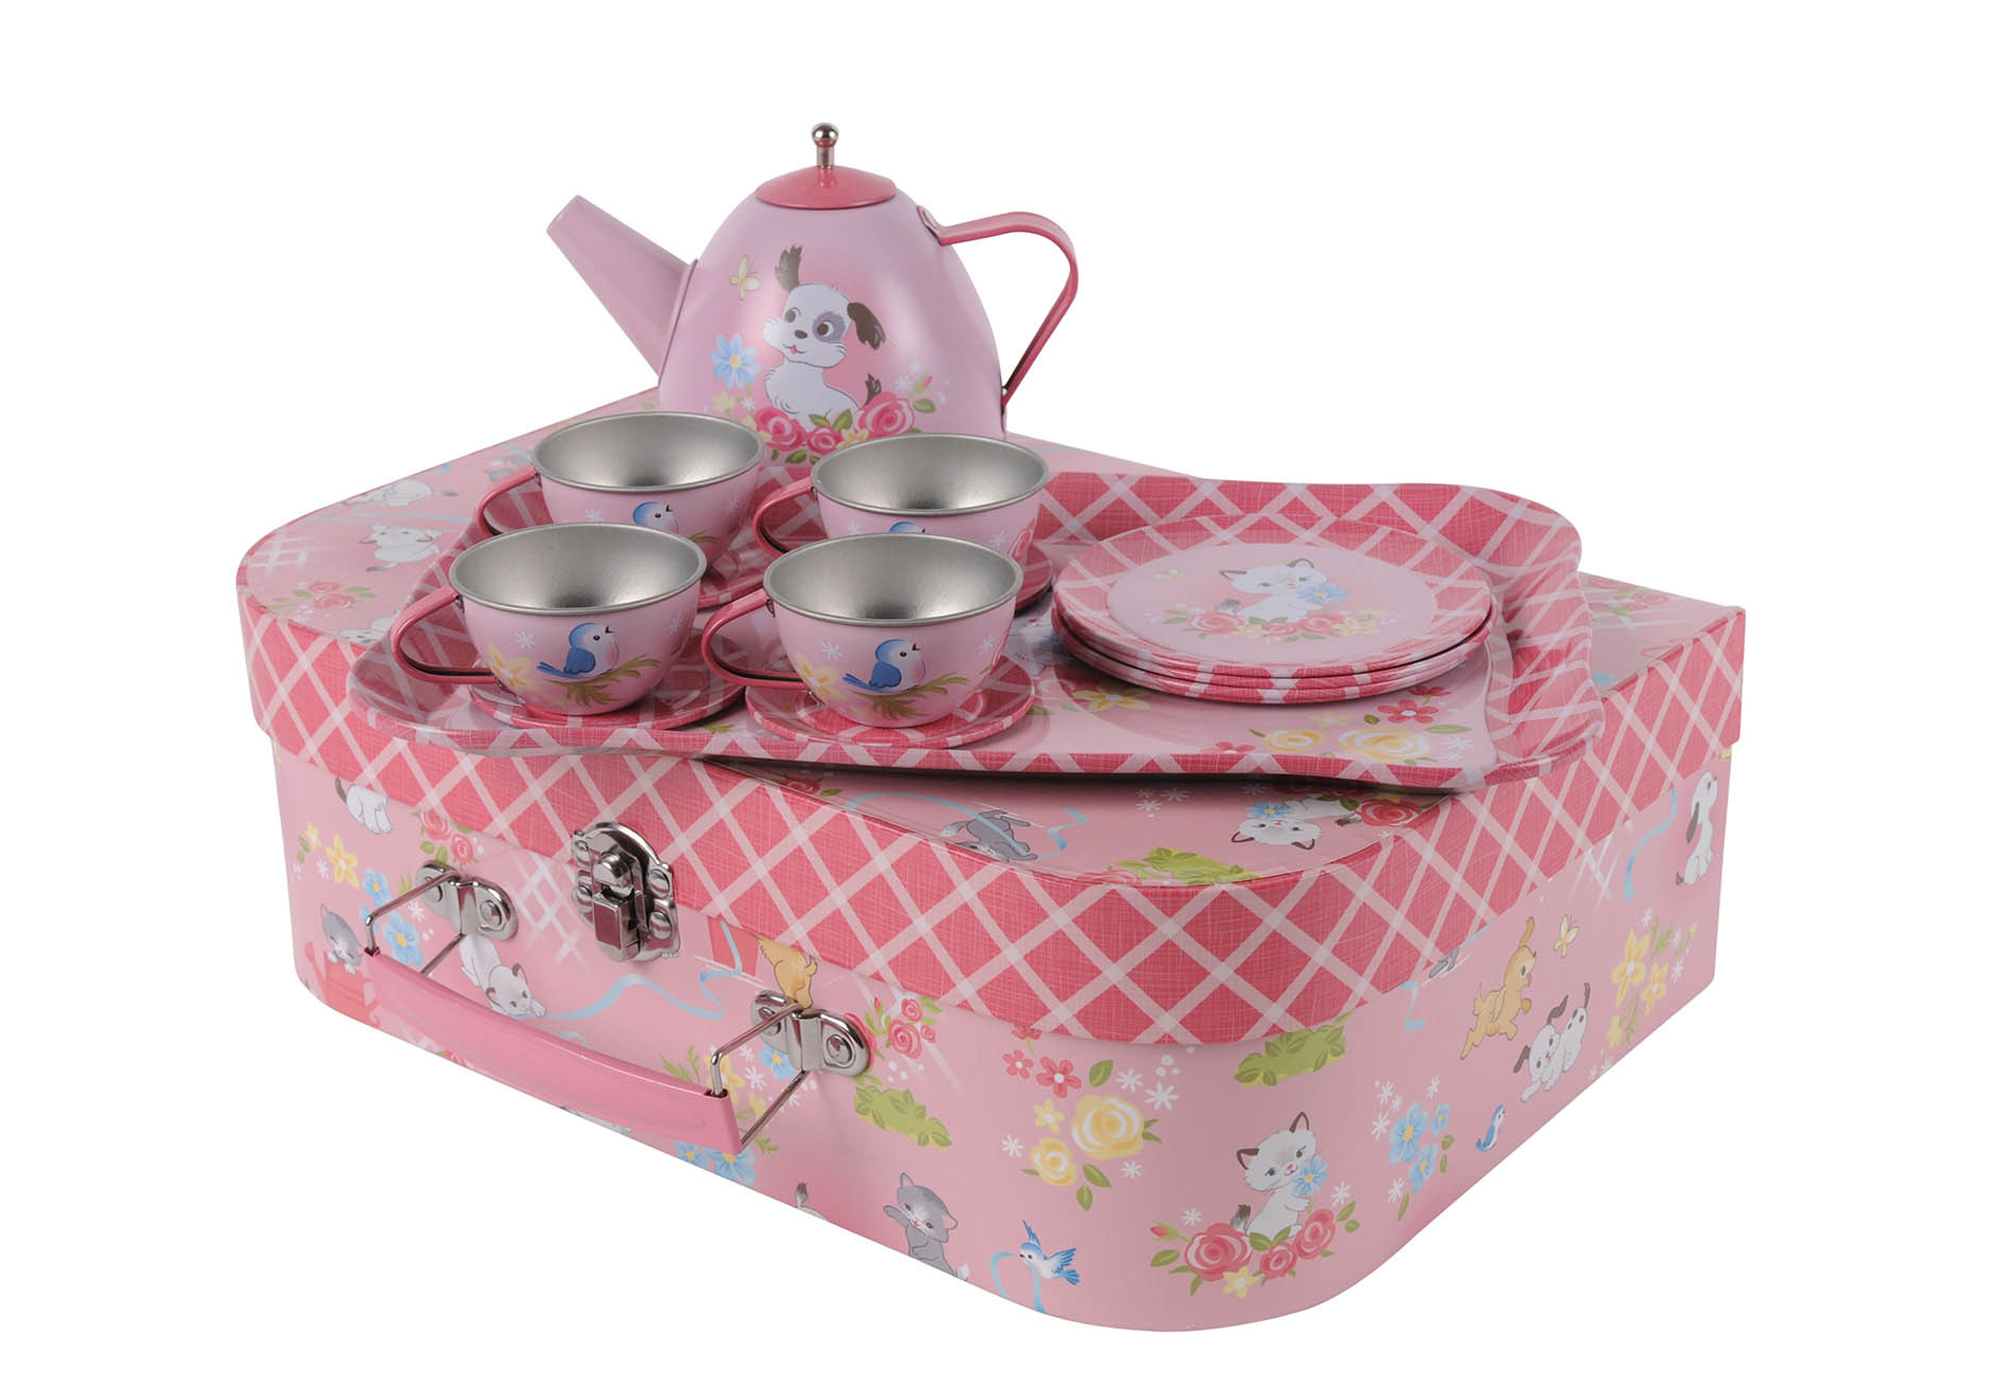 Vintage Tea Set - Kittens and Puppies